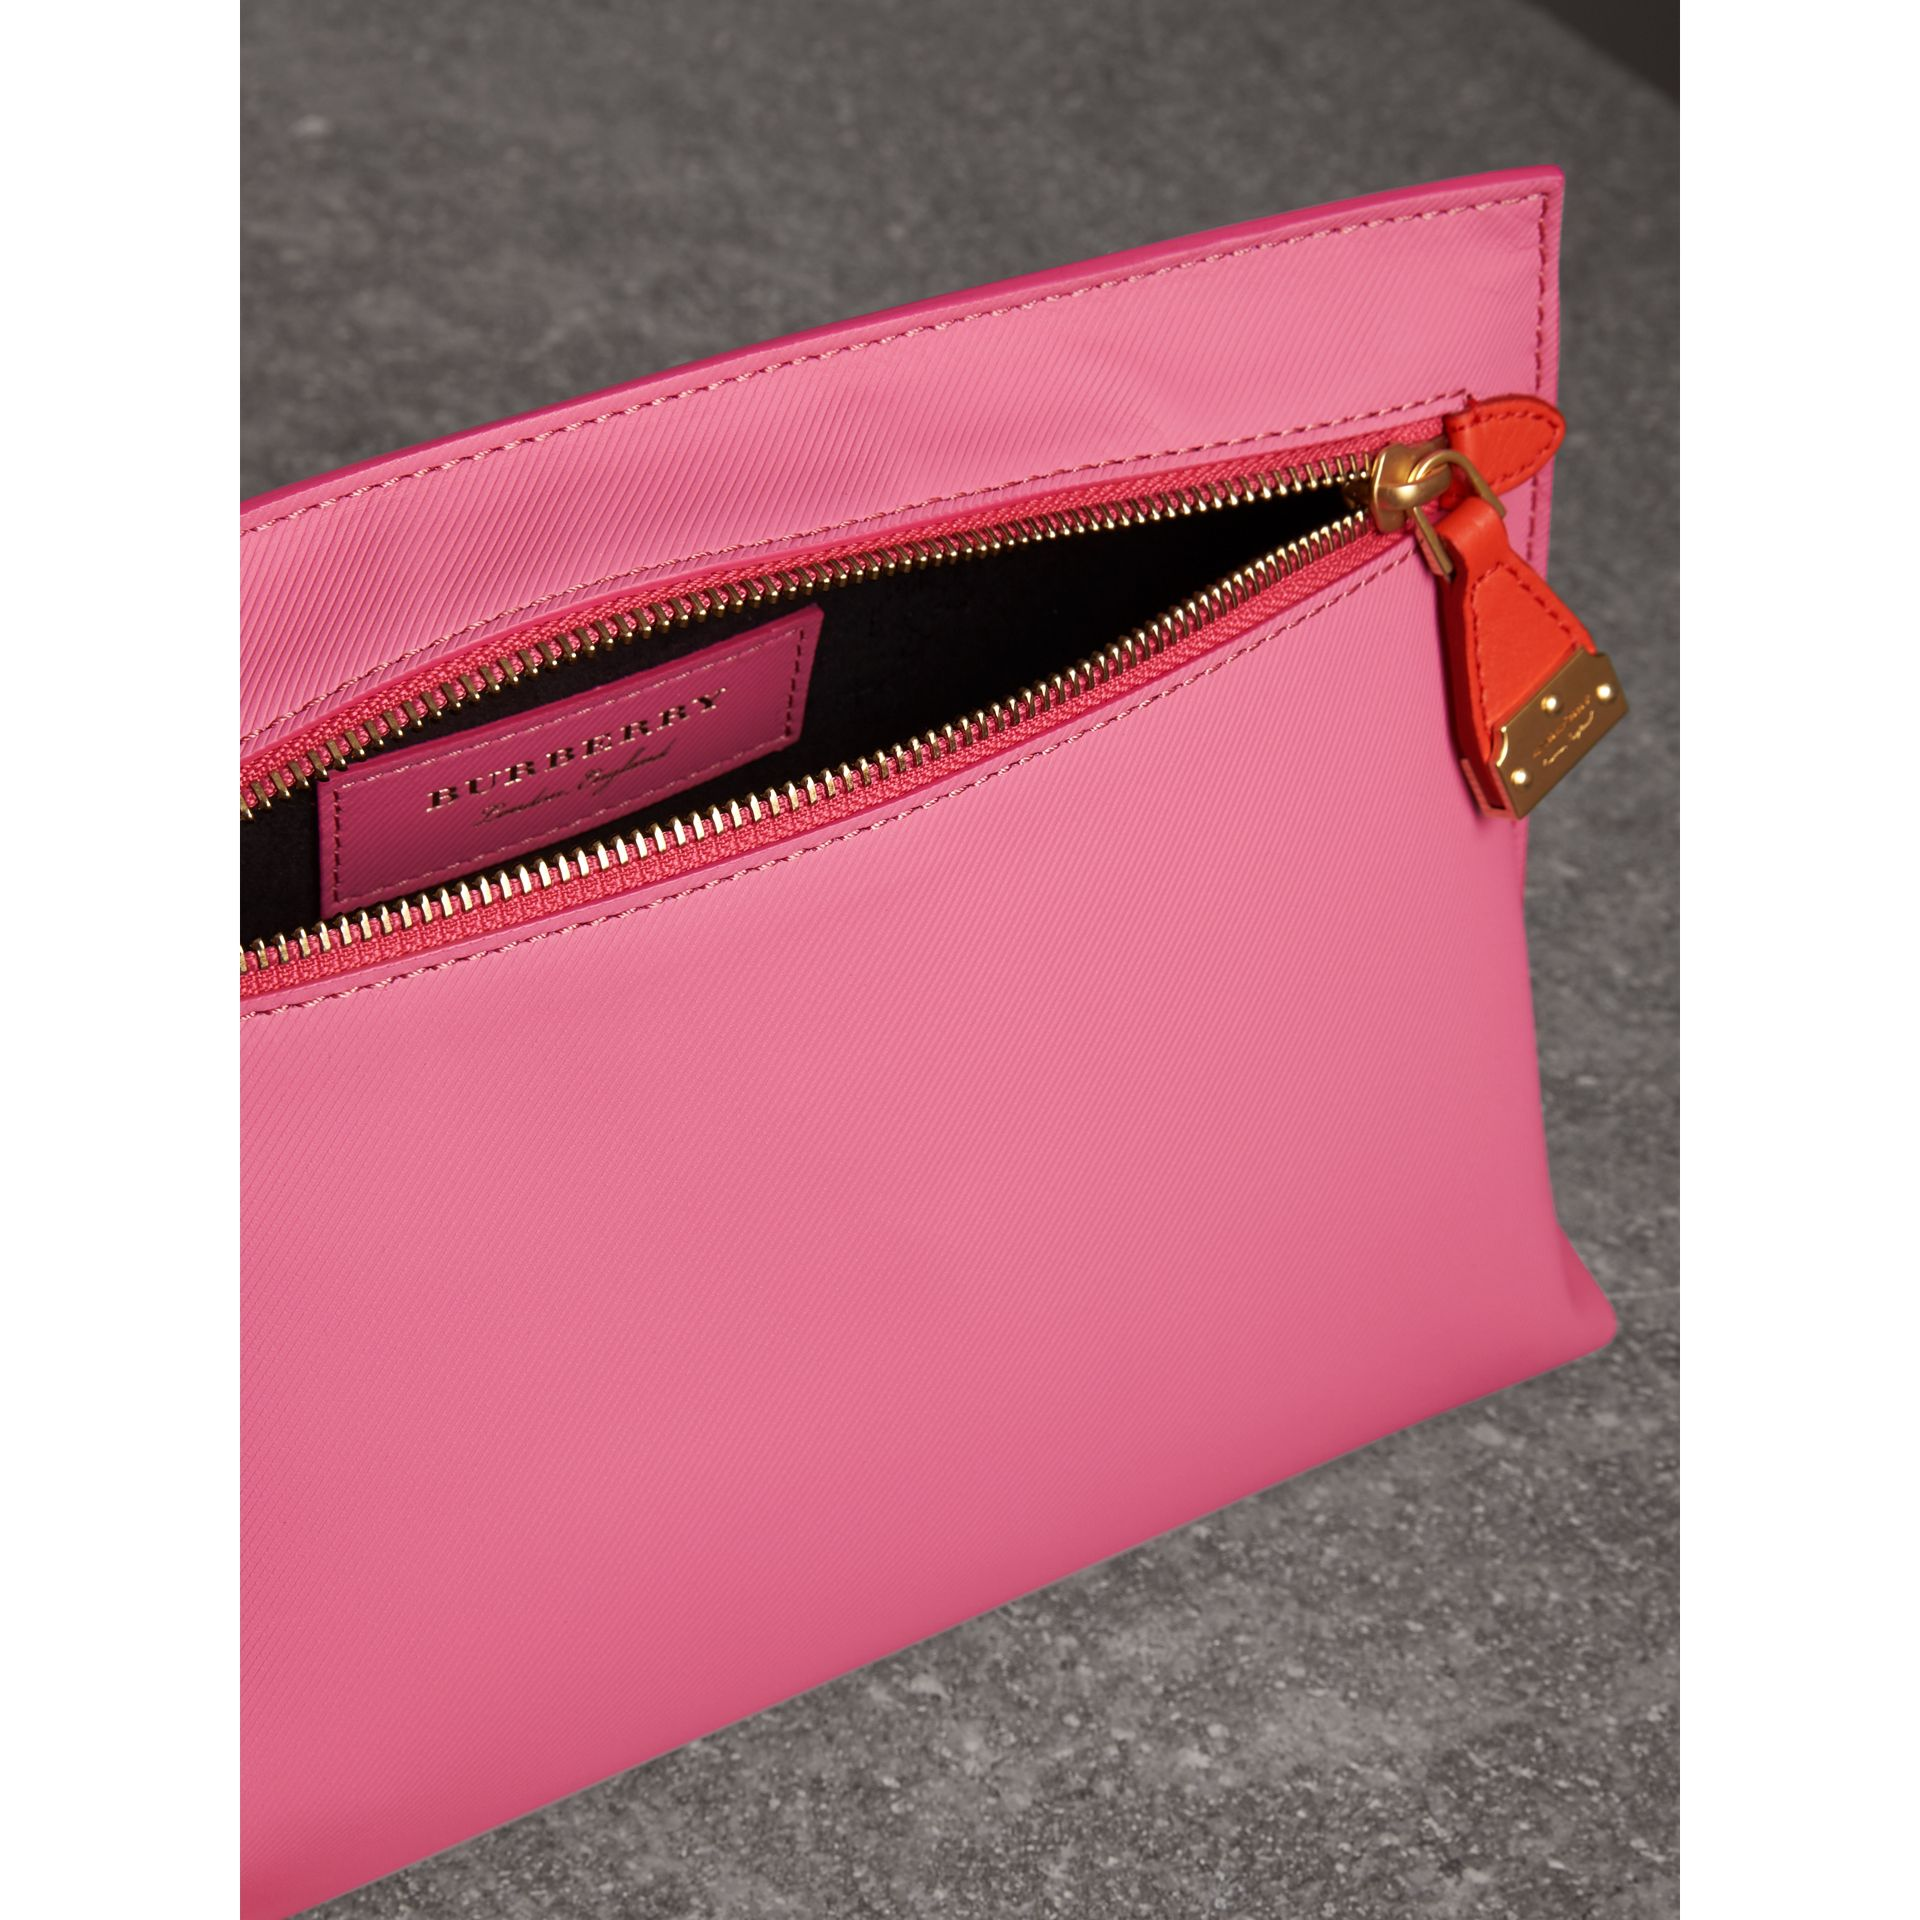 Two-tone Trench Leather Wristlet Pouch in Rose Pink - Women | Burberry Canada - gallery image 3